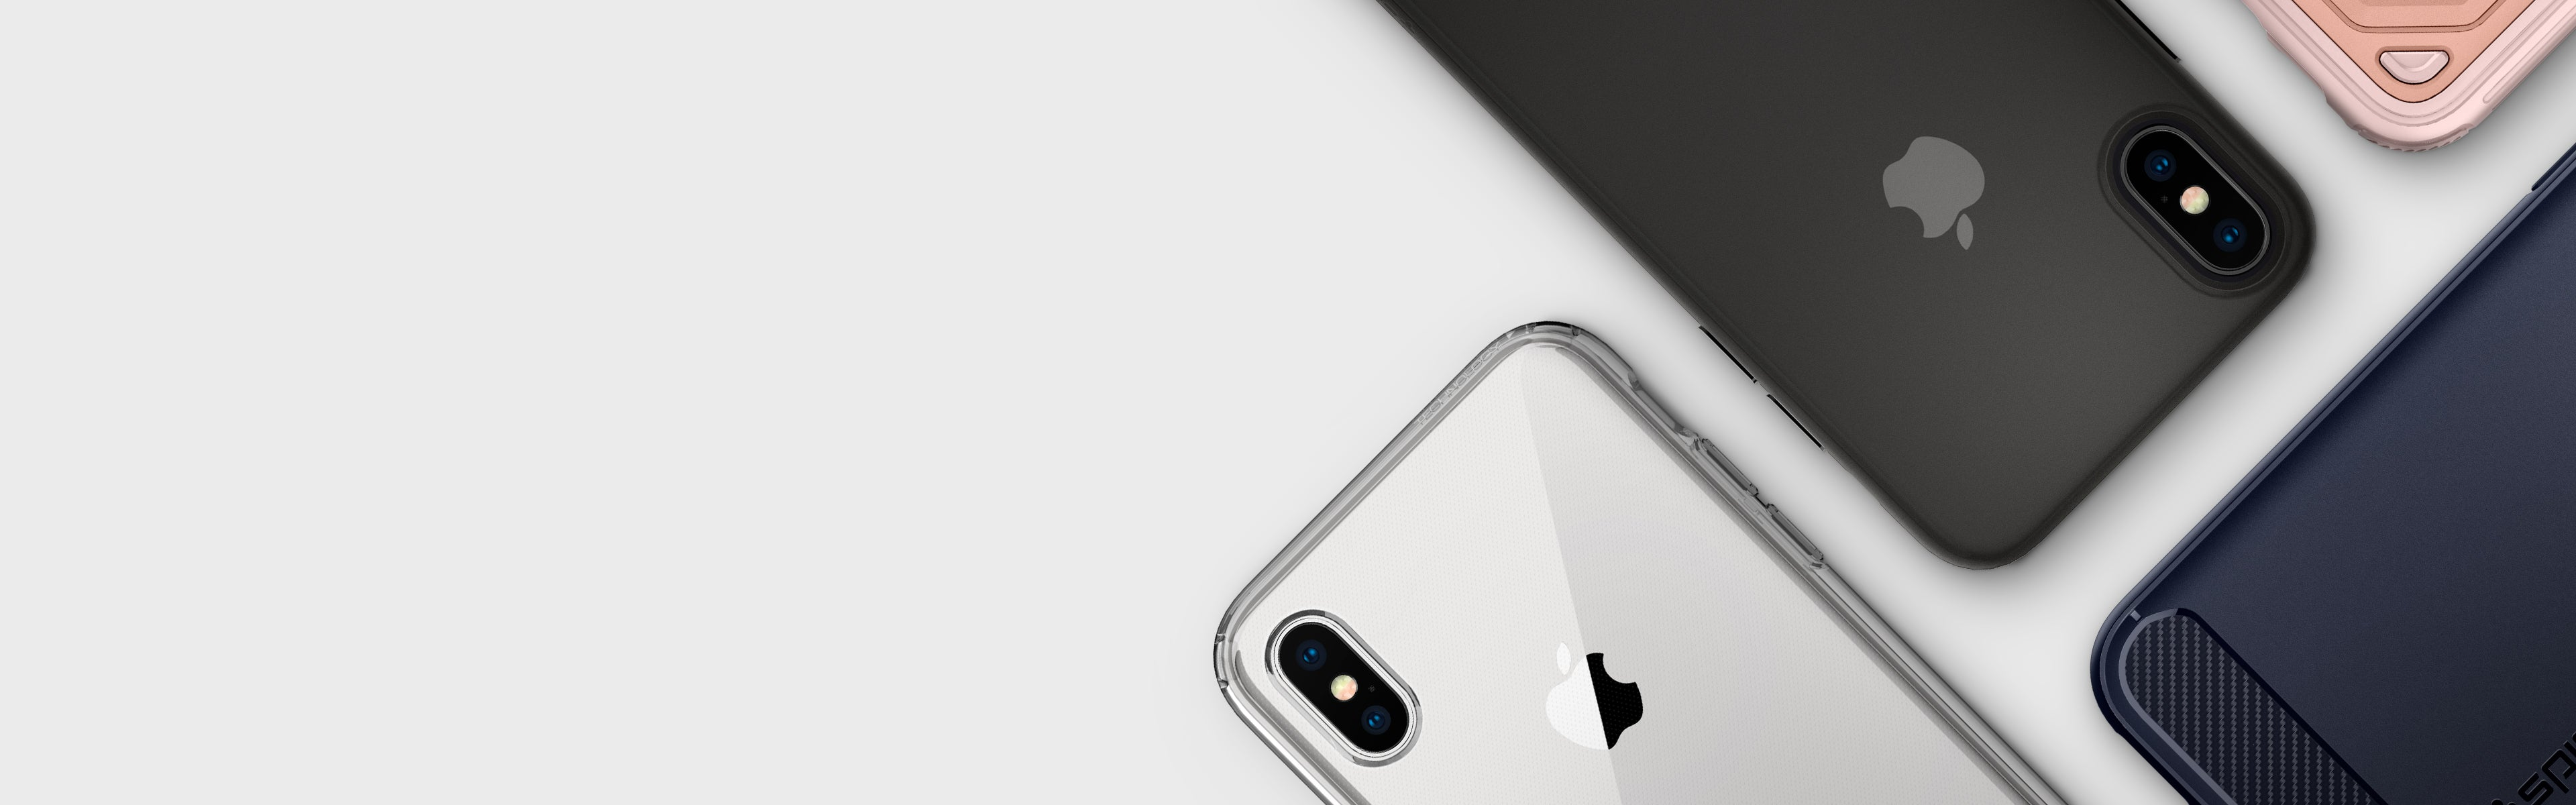 iPhone X Case Collection – Spigen Inc